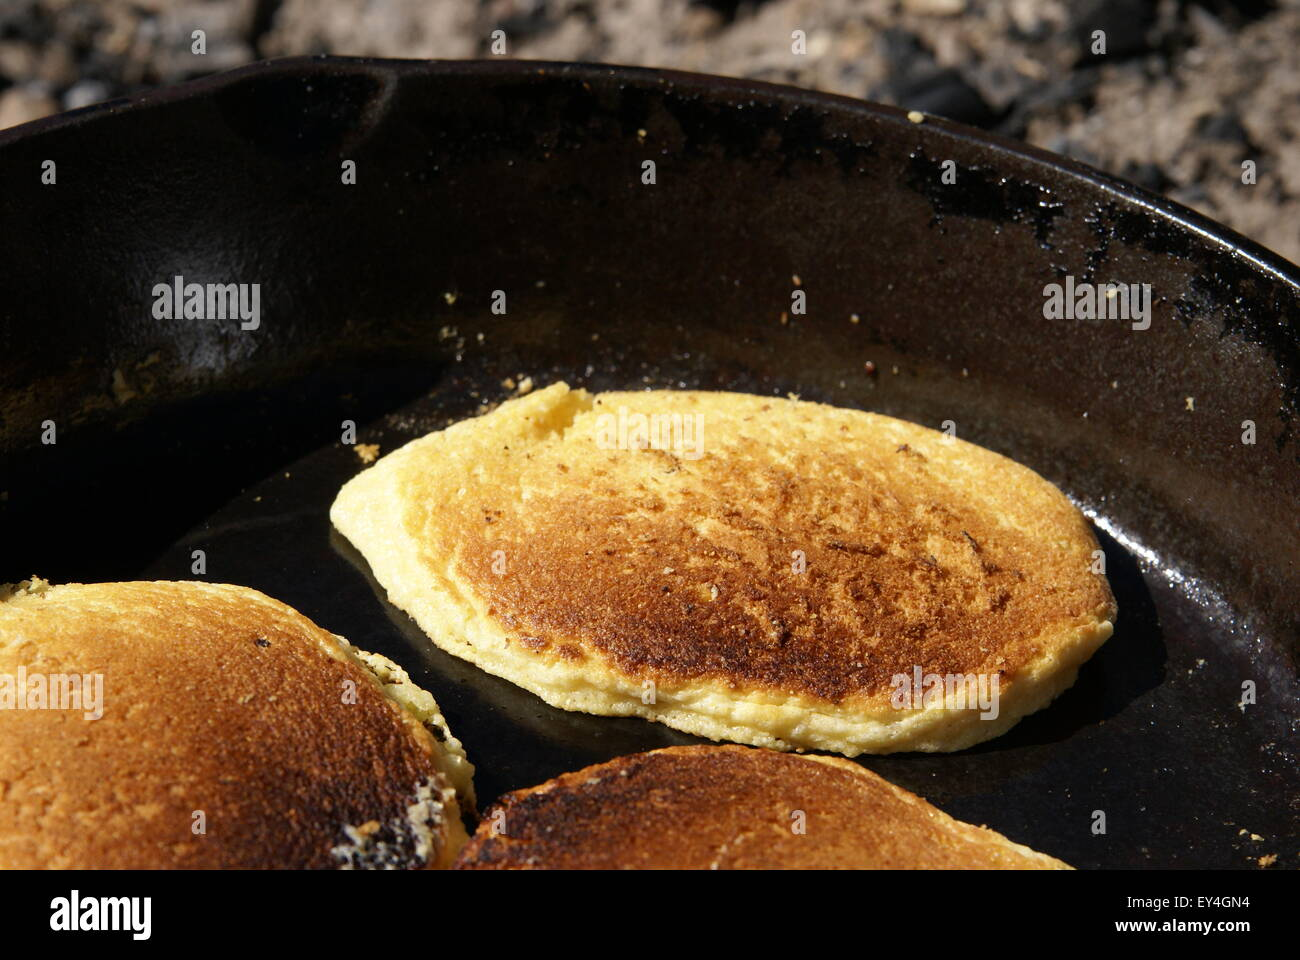 Cornmeal pancakes cooking in a cast iron skillet over an open fire outdoors. Close up view of cakes - Stock Image